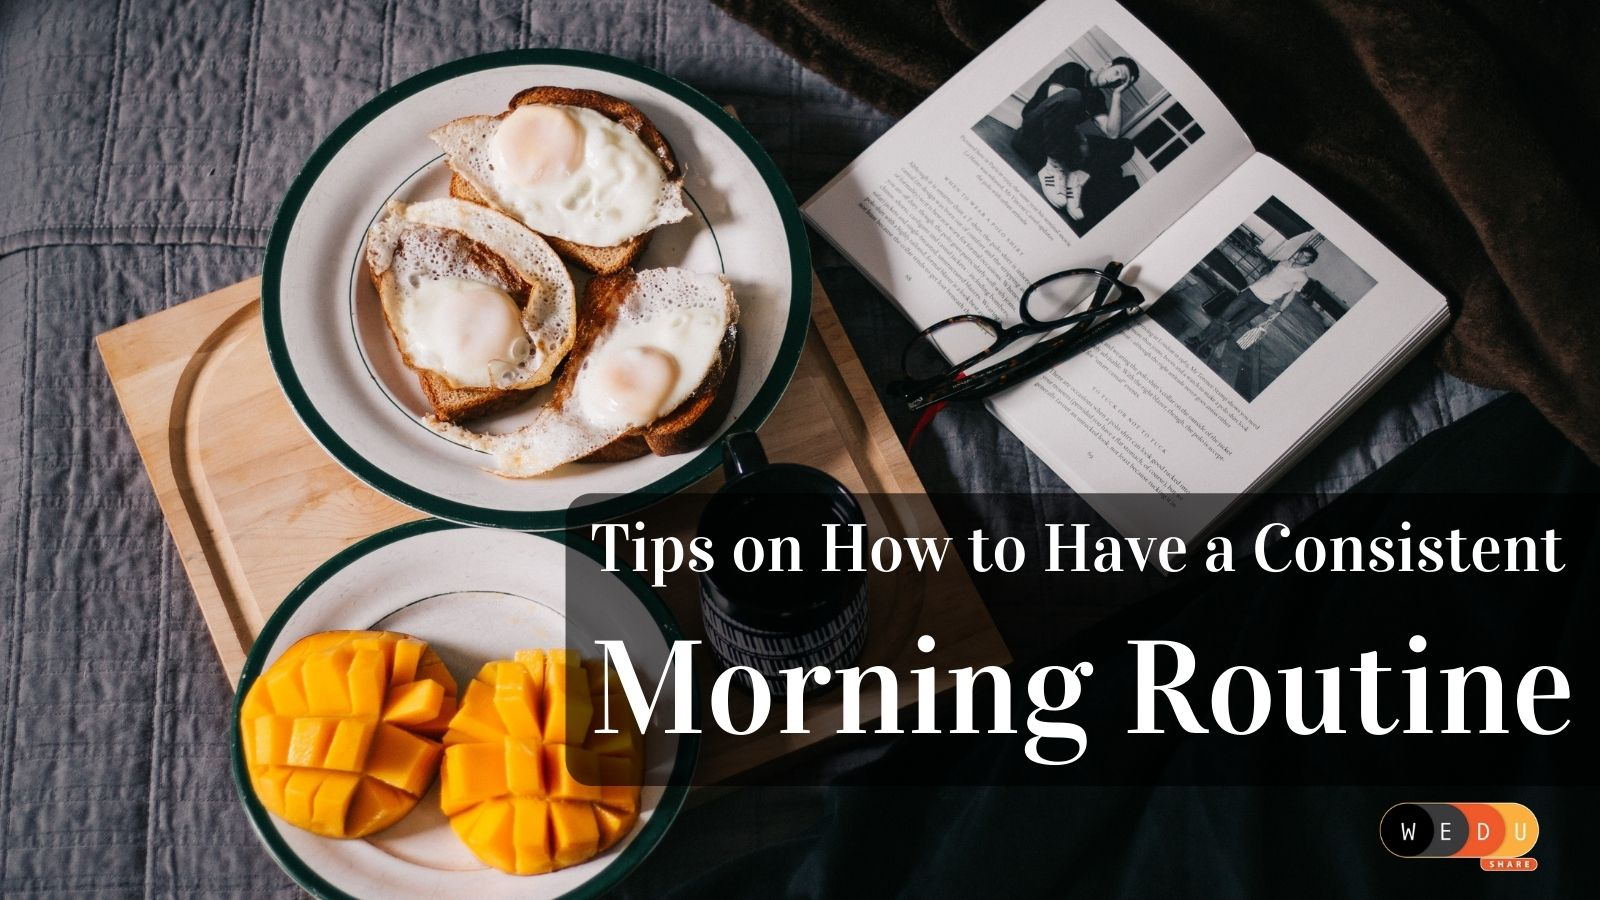 Tips on How to Have a Consistent Morning Routine